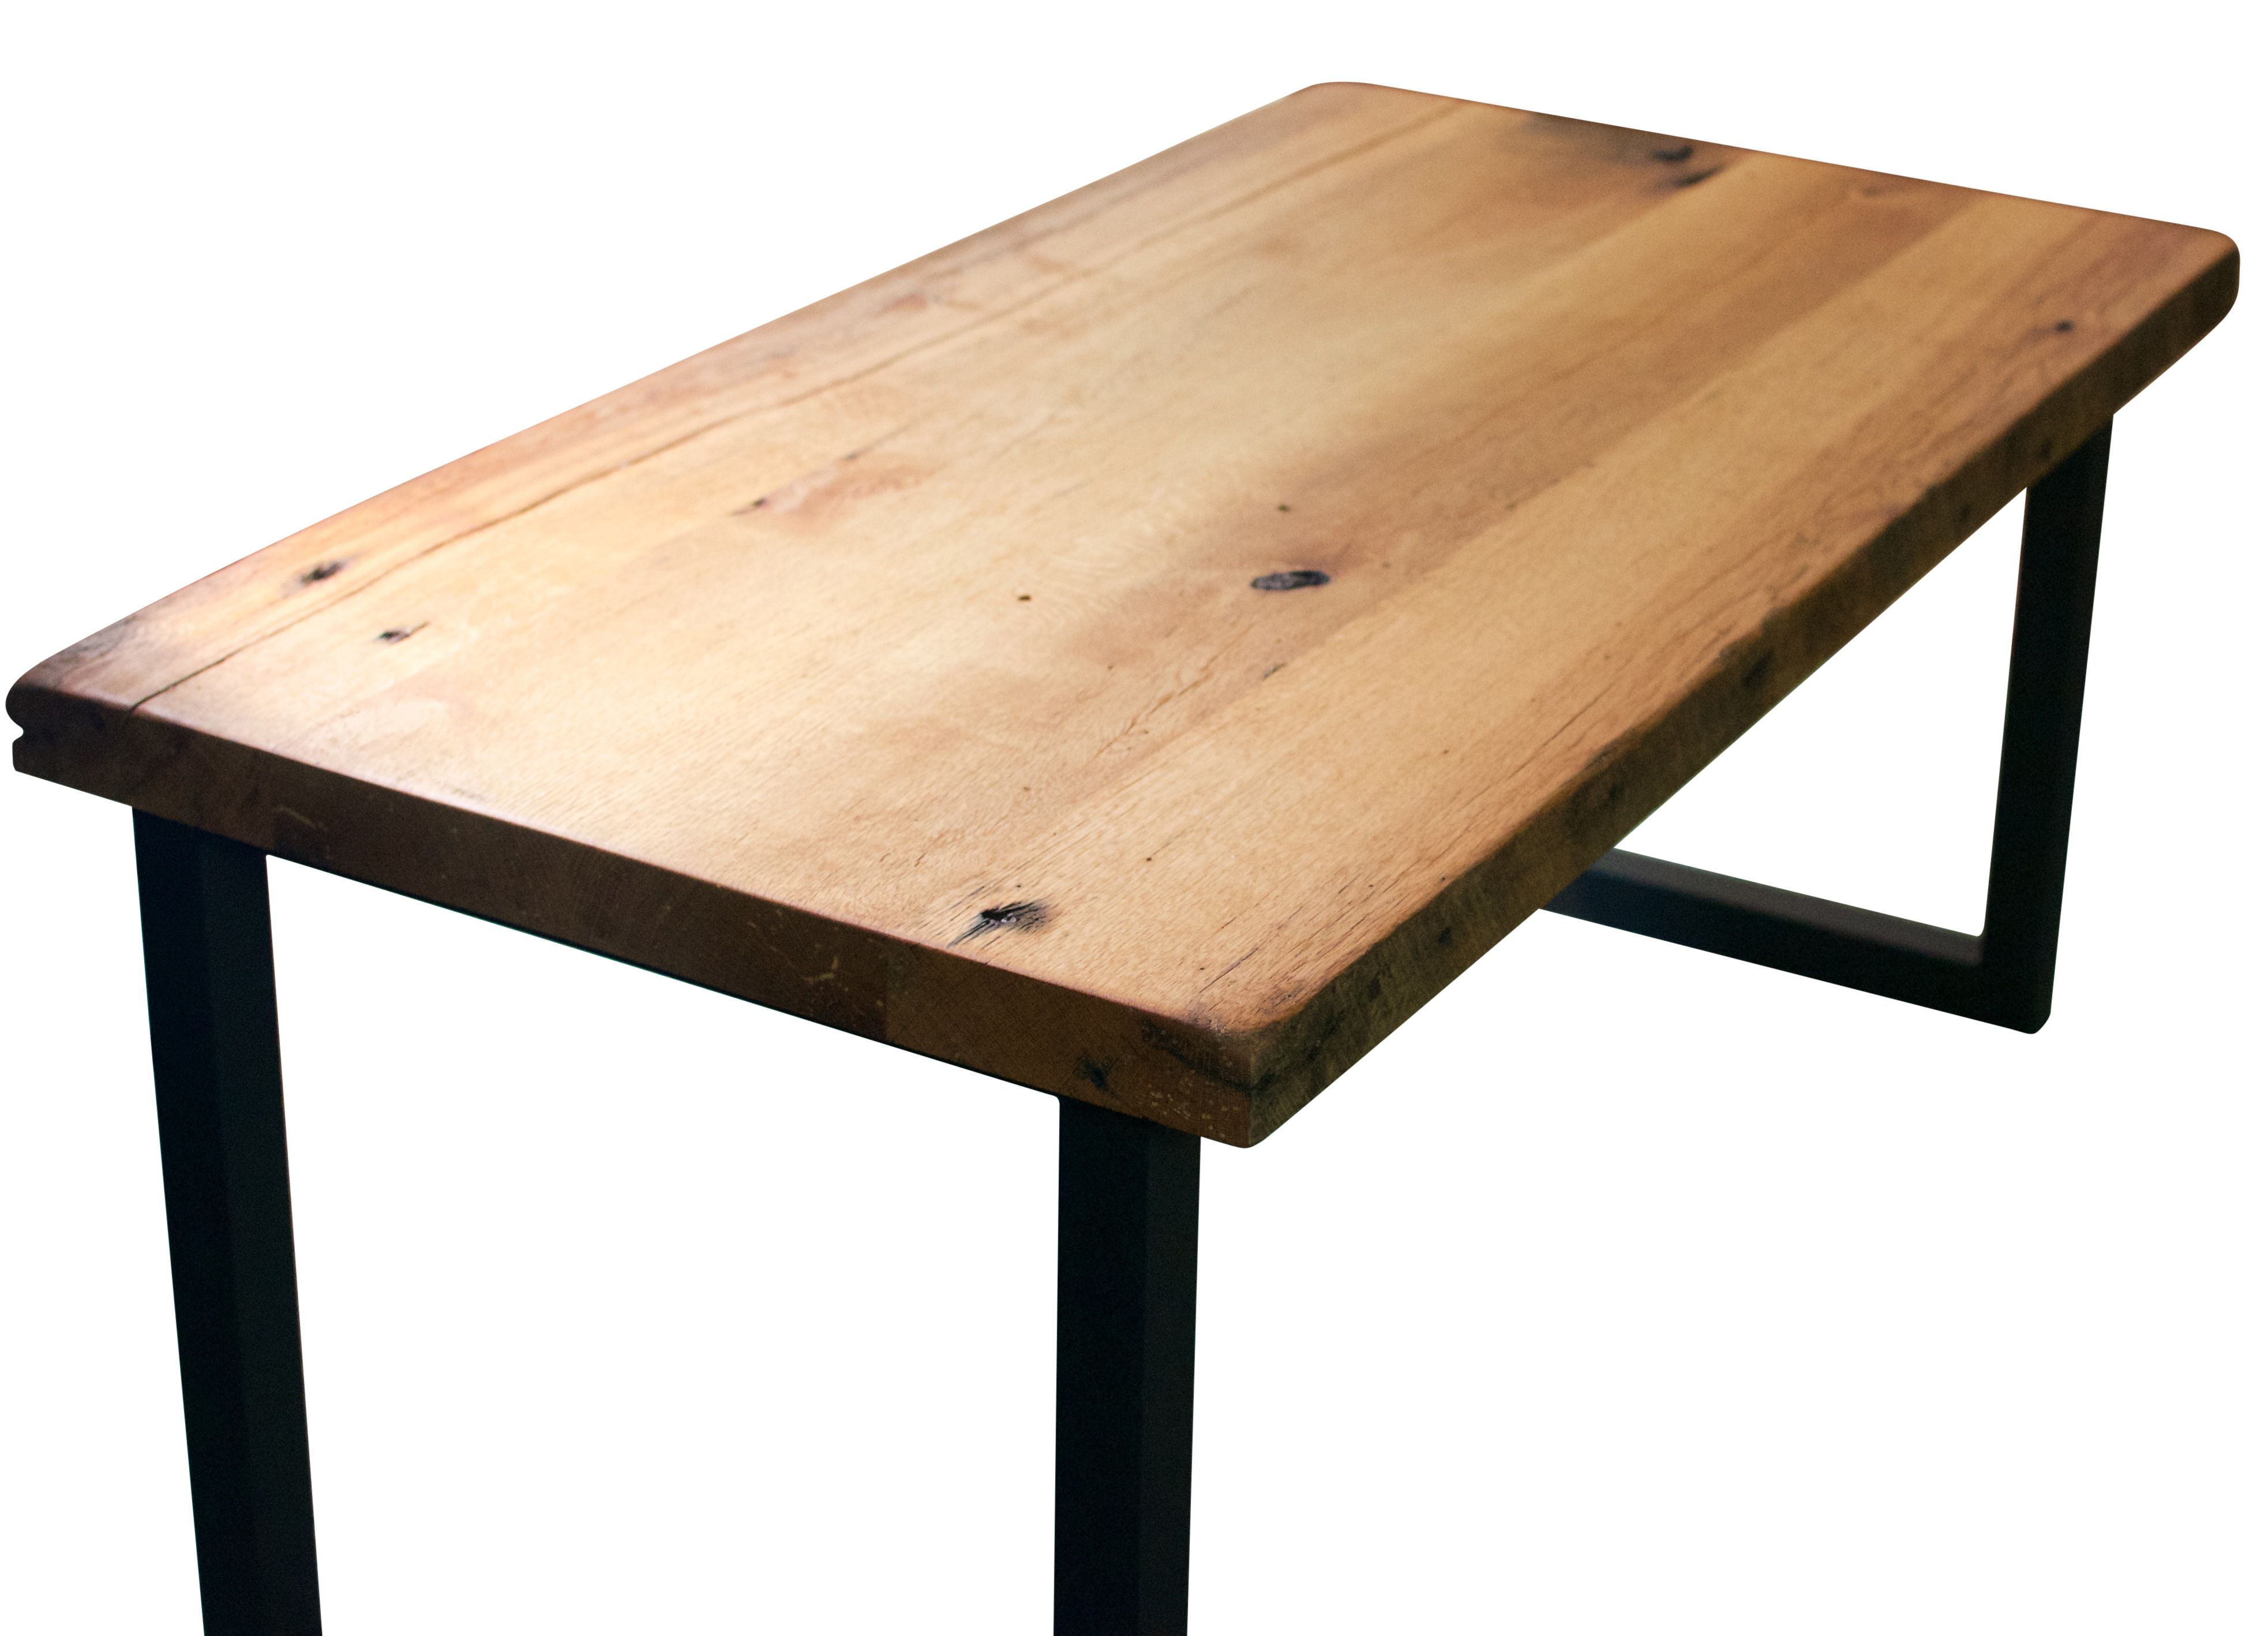 Buy Hand Made Reclaimed Wood Coffee Table With Steel Legs Made To Order From Blowing Rock